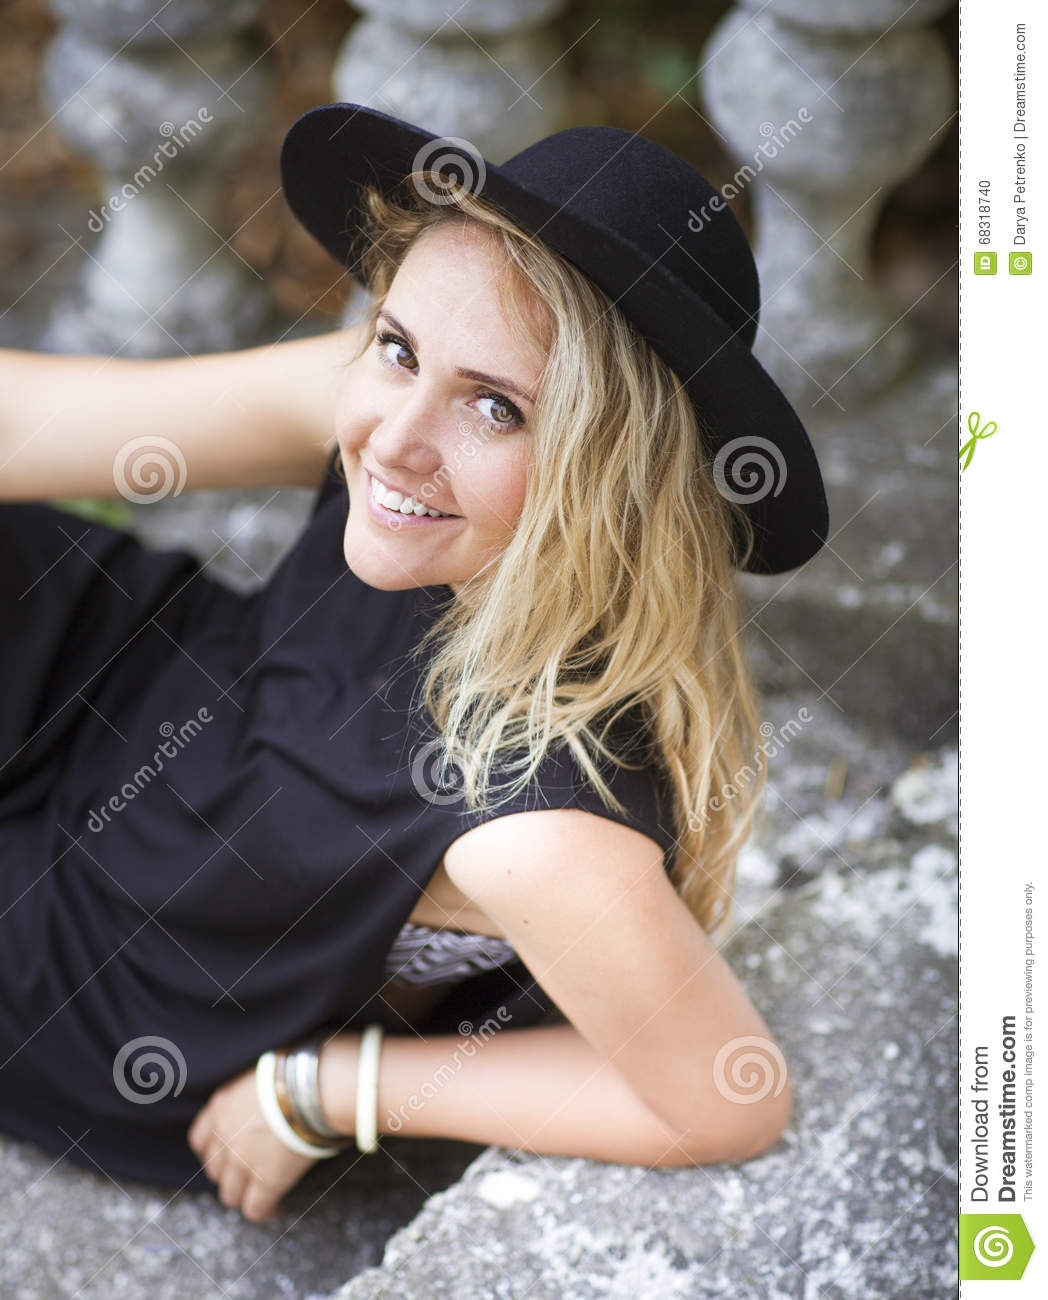 37716cac483 Fashion portrait of beautiful hippie young woman wearing boho chic clothes  and black hat outdoors